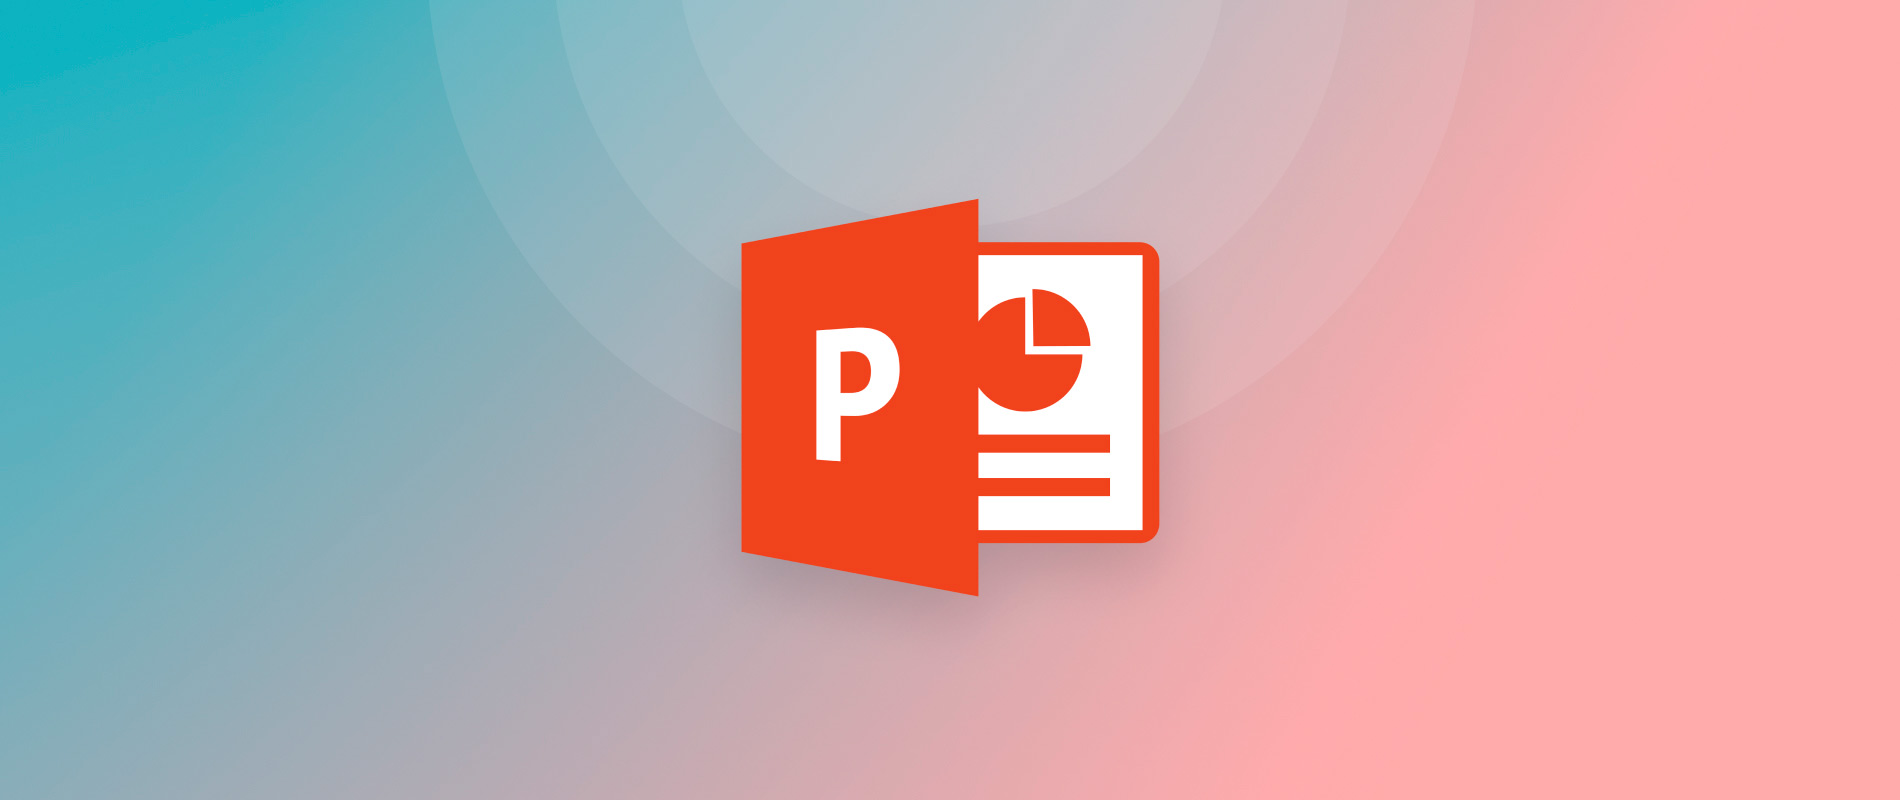 How to Recover a Deleted or Unsaved PowerPoint File